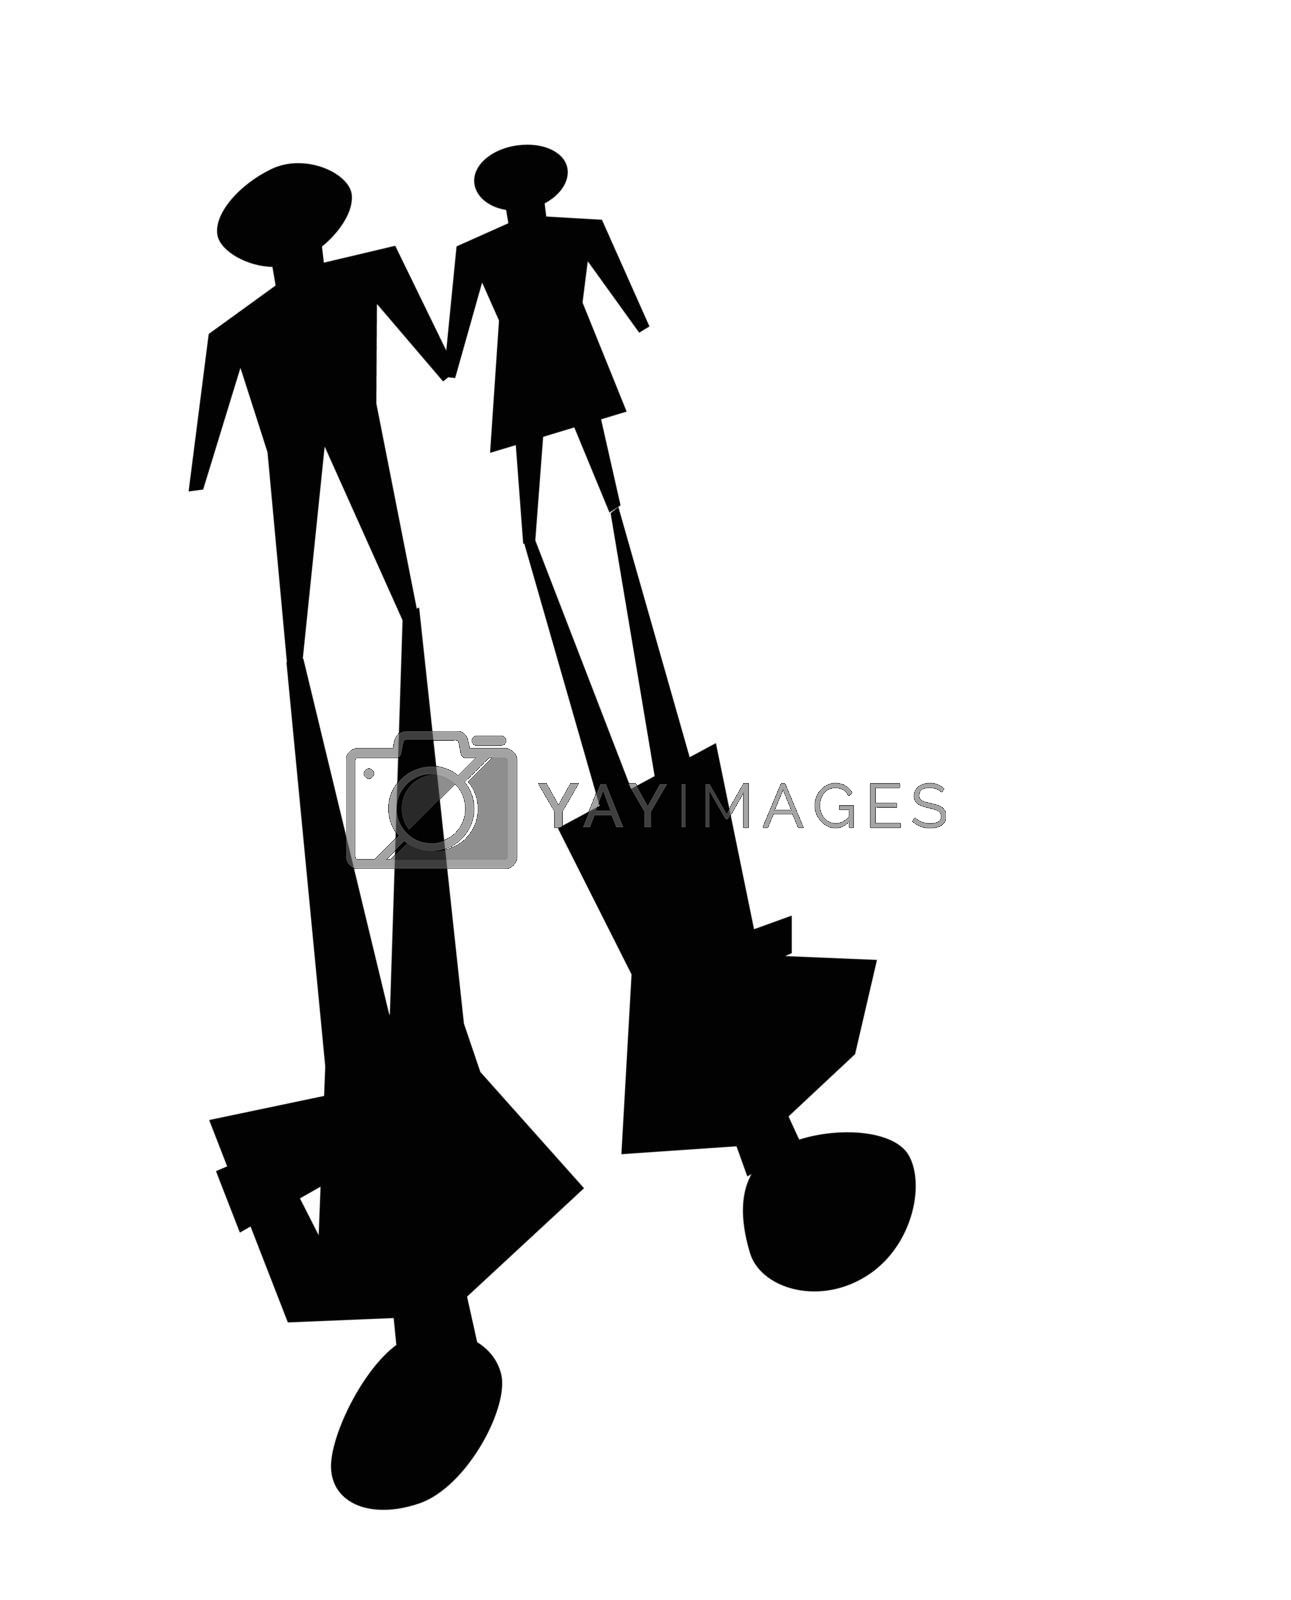 illustrations of broken relationship, couple shadow was ignoring each other.